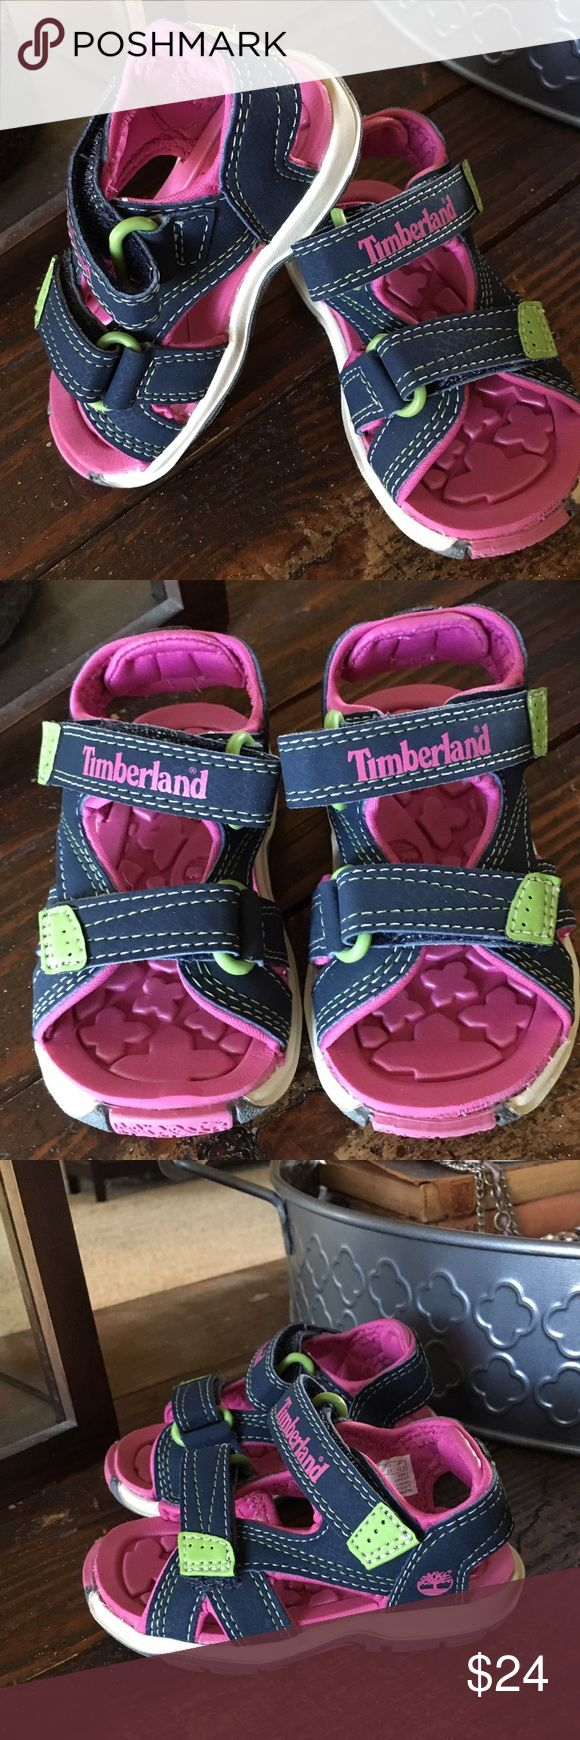 NWOT Timberland Velcro Sandals NWOT Timberland Adventure Seeker Velcro Sandals for Toddlers. Super adorable.   From Website:  •Lightweight, water-friendly comfort •Two velcro straps - adjustable for fit and feel •Sanitized® anti-microbial treatment on footbed prevents odors / keeps their feet fresh •EVA footbed for shock absorption, comfort and lightweight cushioning •Non-marking rubber outsole for lightweight flexibility and traction   🚭Nonsmoking Home. ✅We have a Morkie. Timberland Shoes…